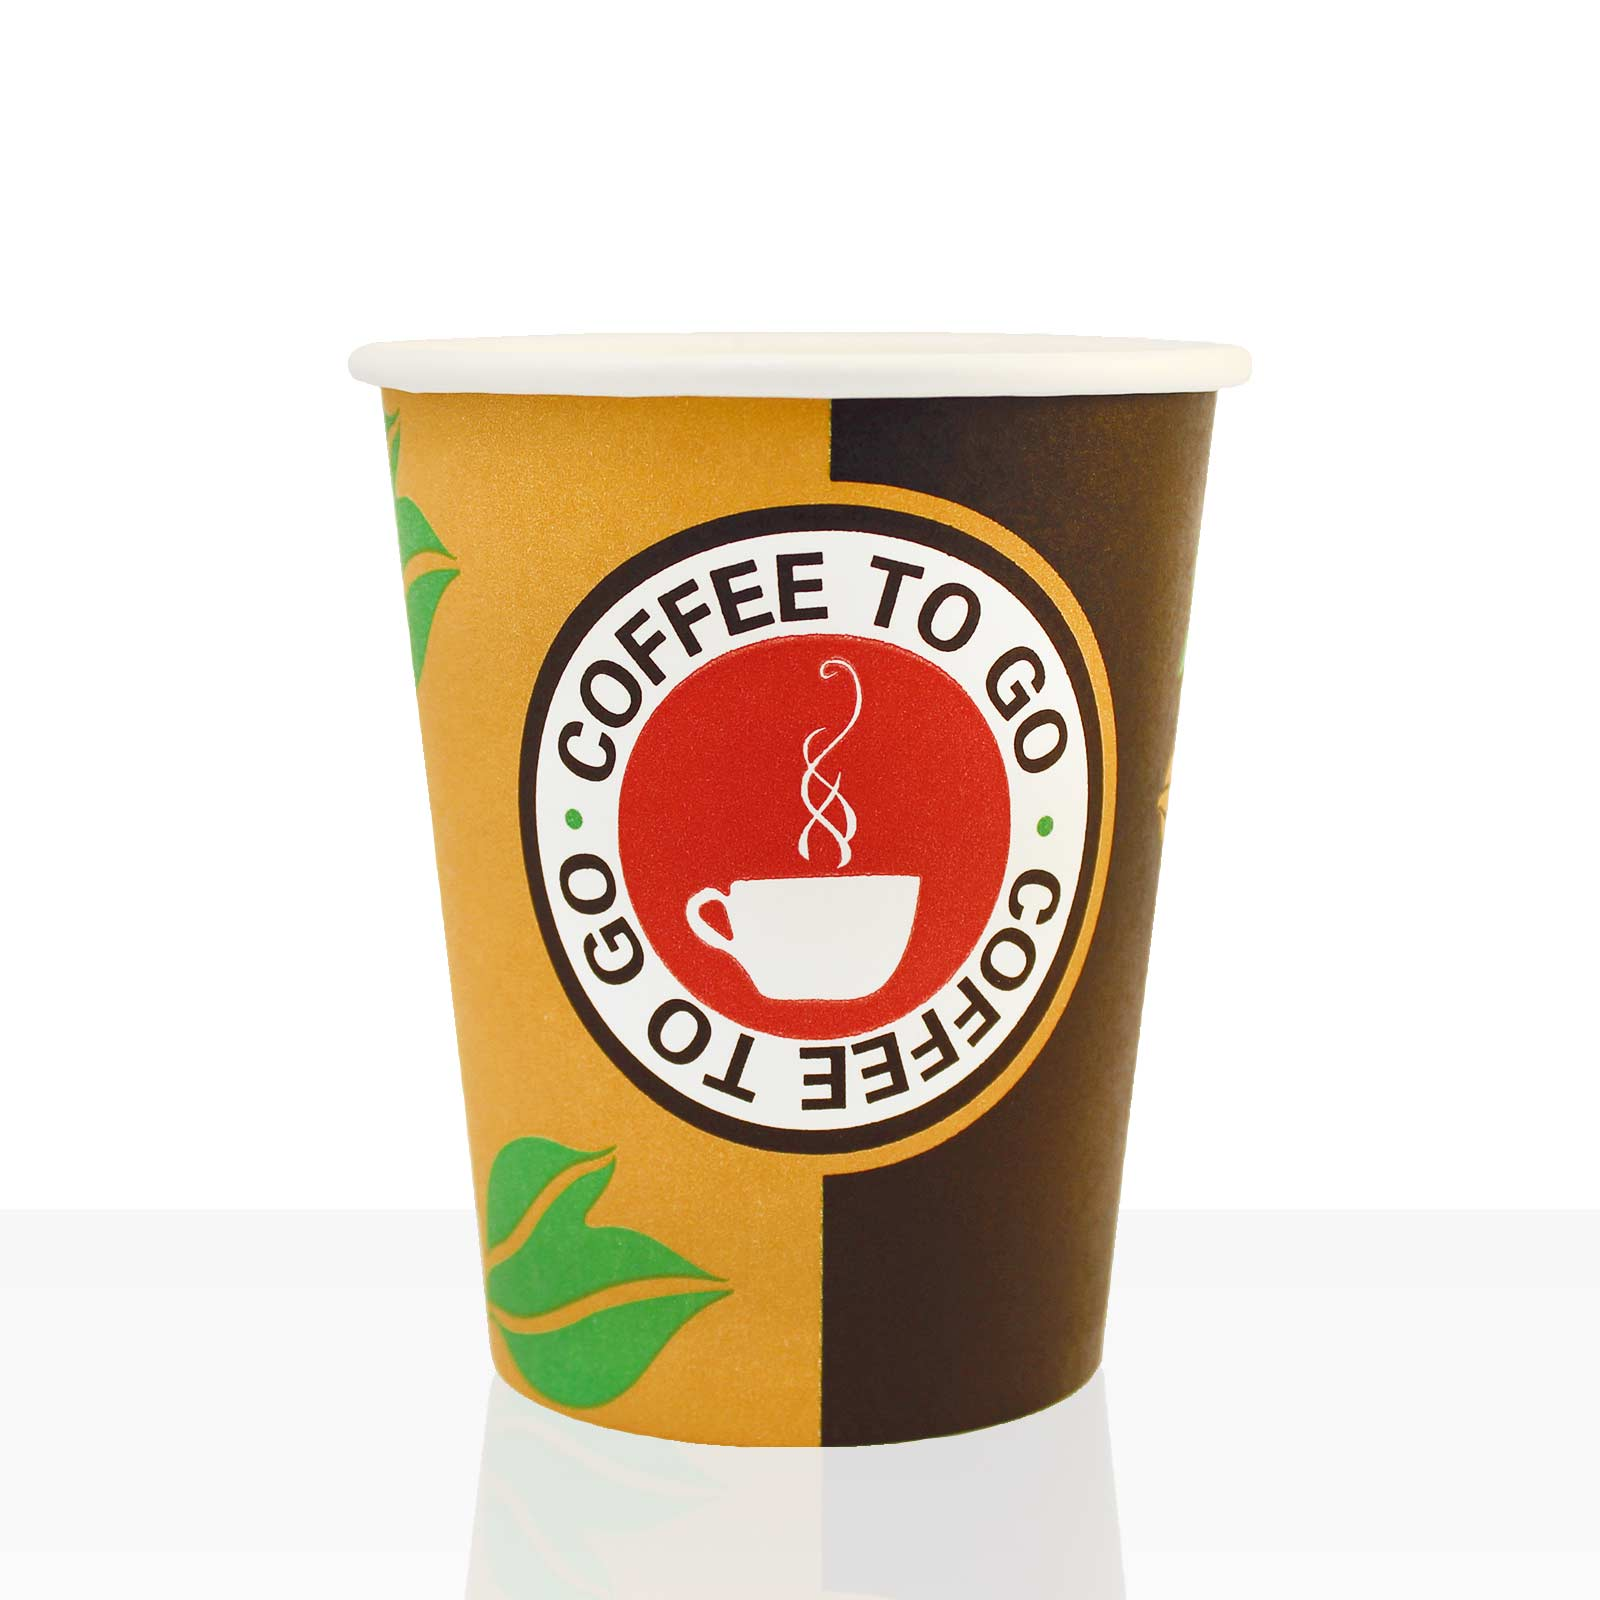 Coffee to go Becher aus Hartpapier 0,2l, 100Stk, Pappbecher, Kaffeebecher to go